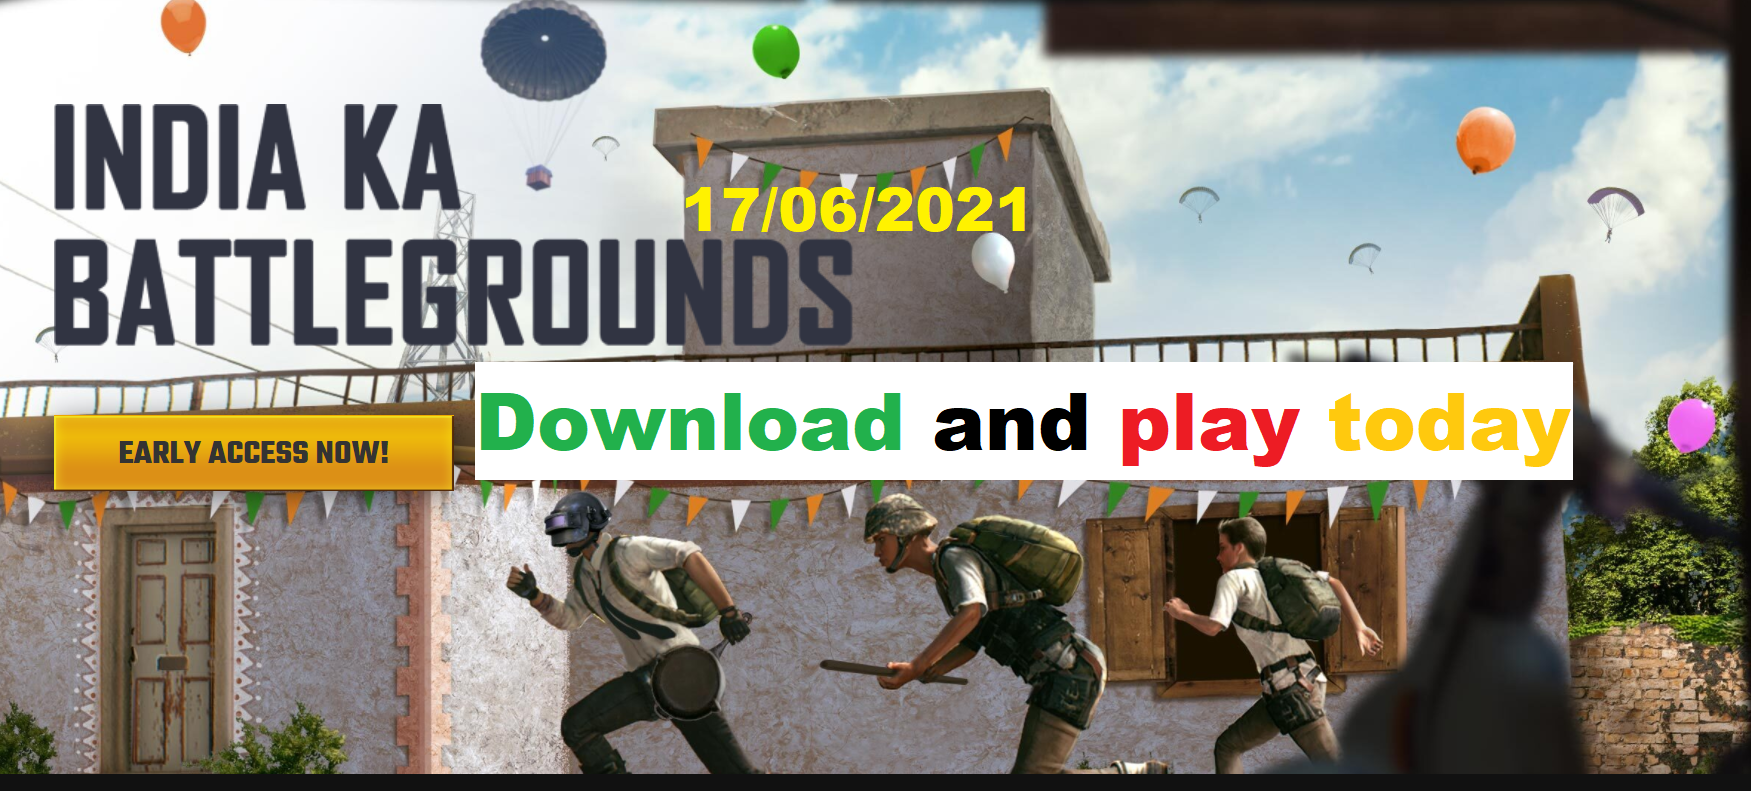 EARLY ACCESS APK+OBB DOWNLOAD LINK